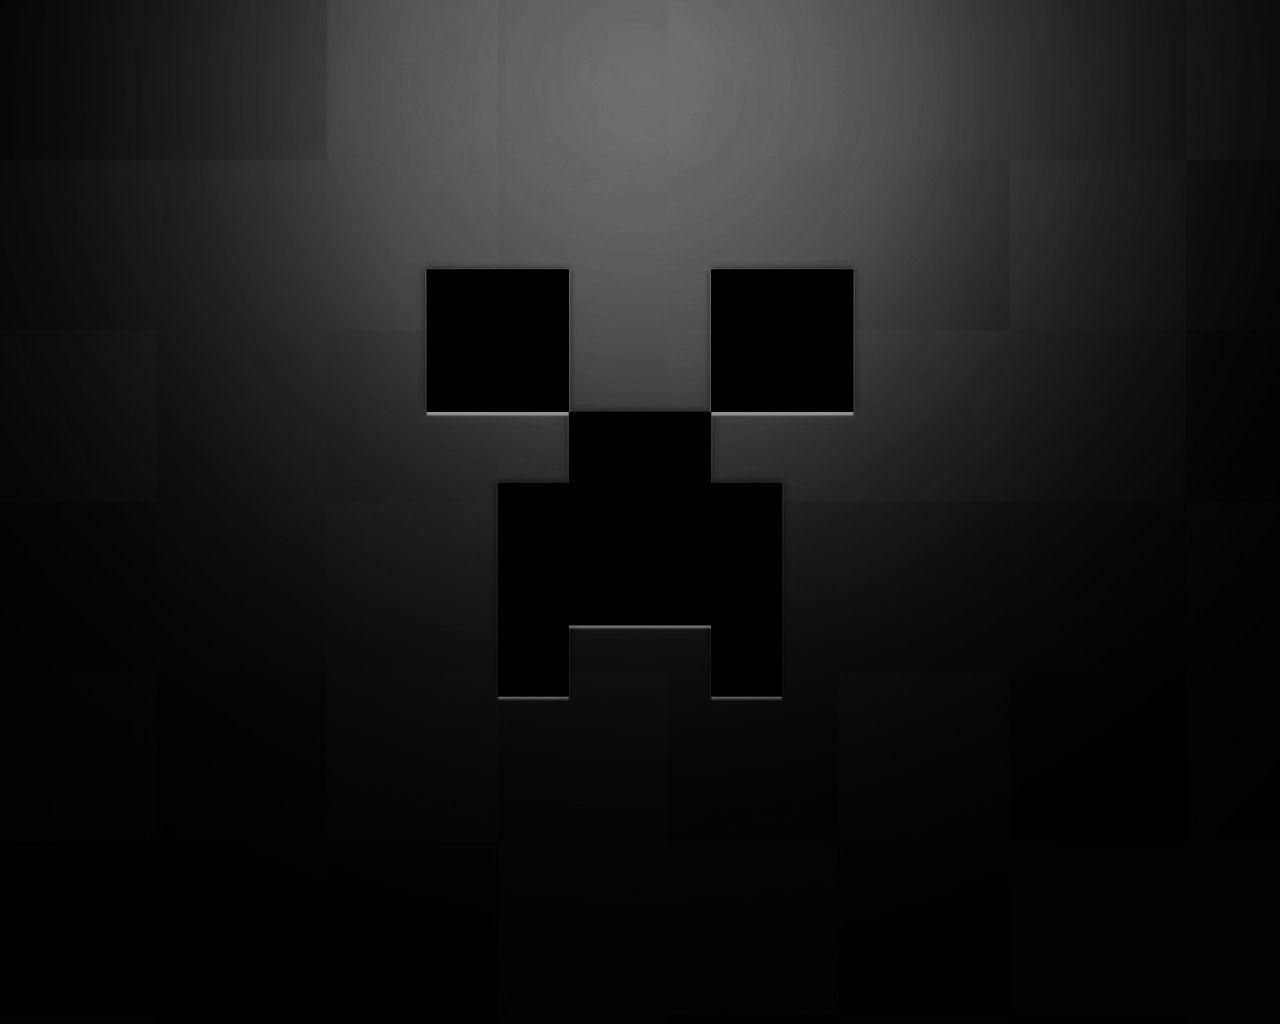 Minecraft Creeper Backgrounds #721 | Hdwidescreens.